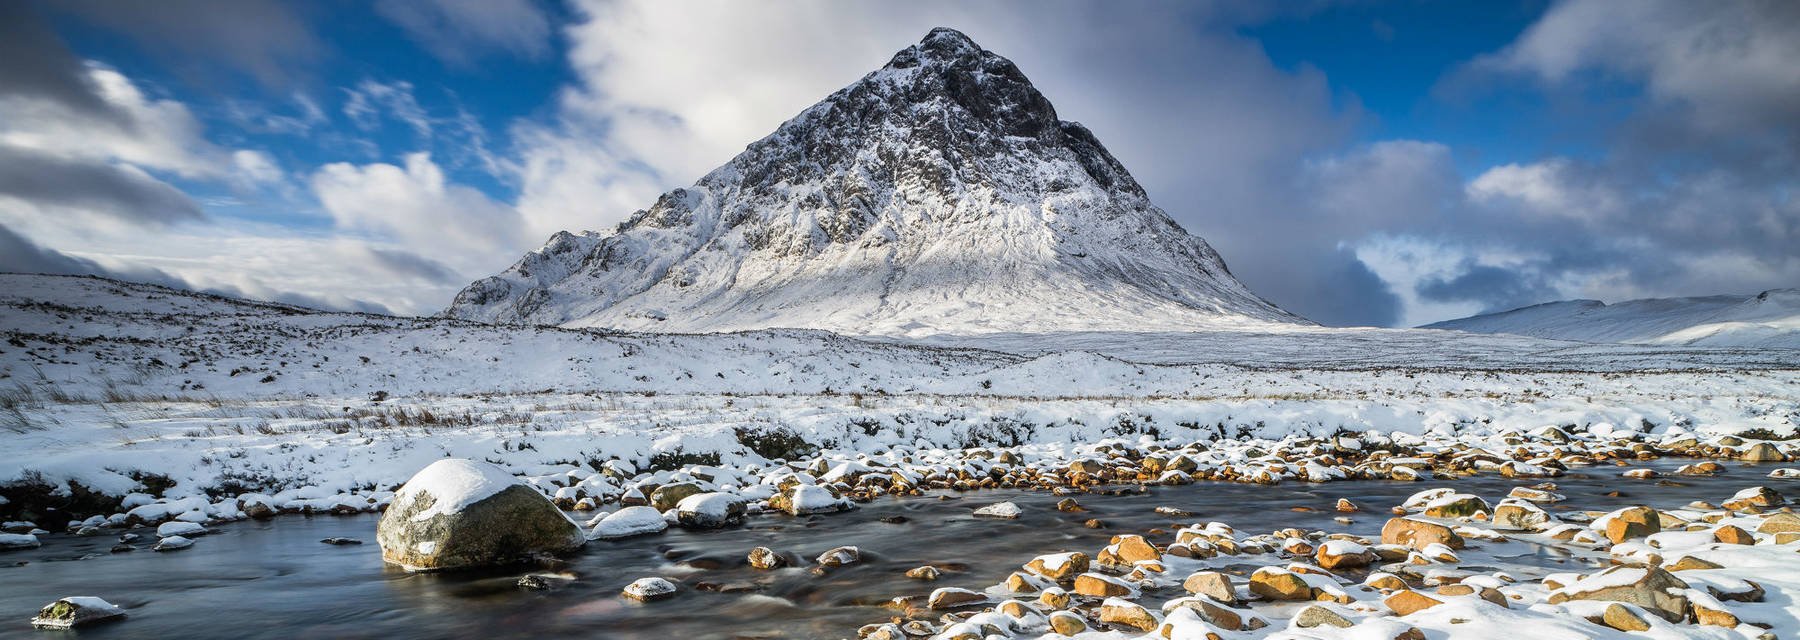 Buachaille Etive Mor in snow.